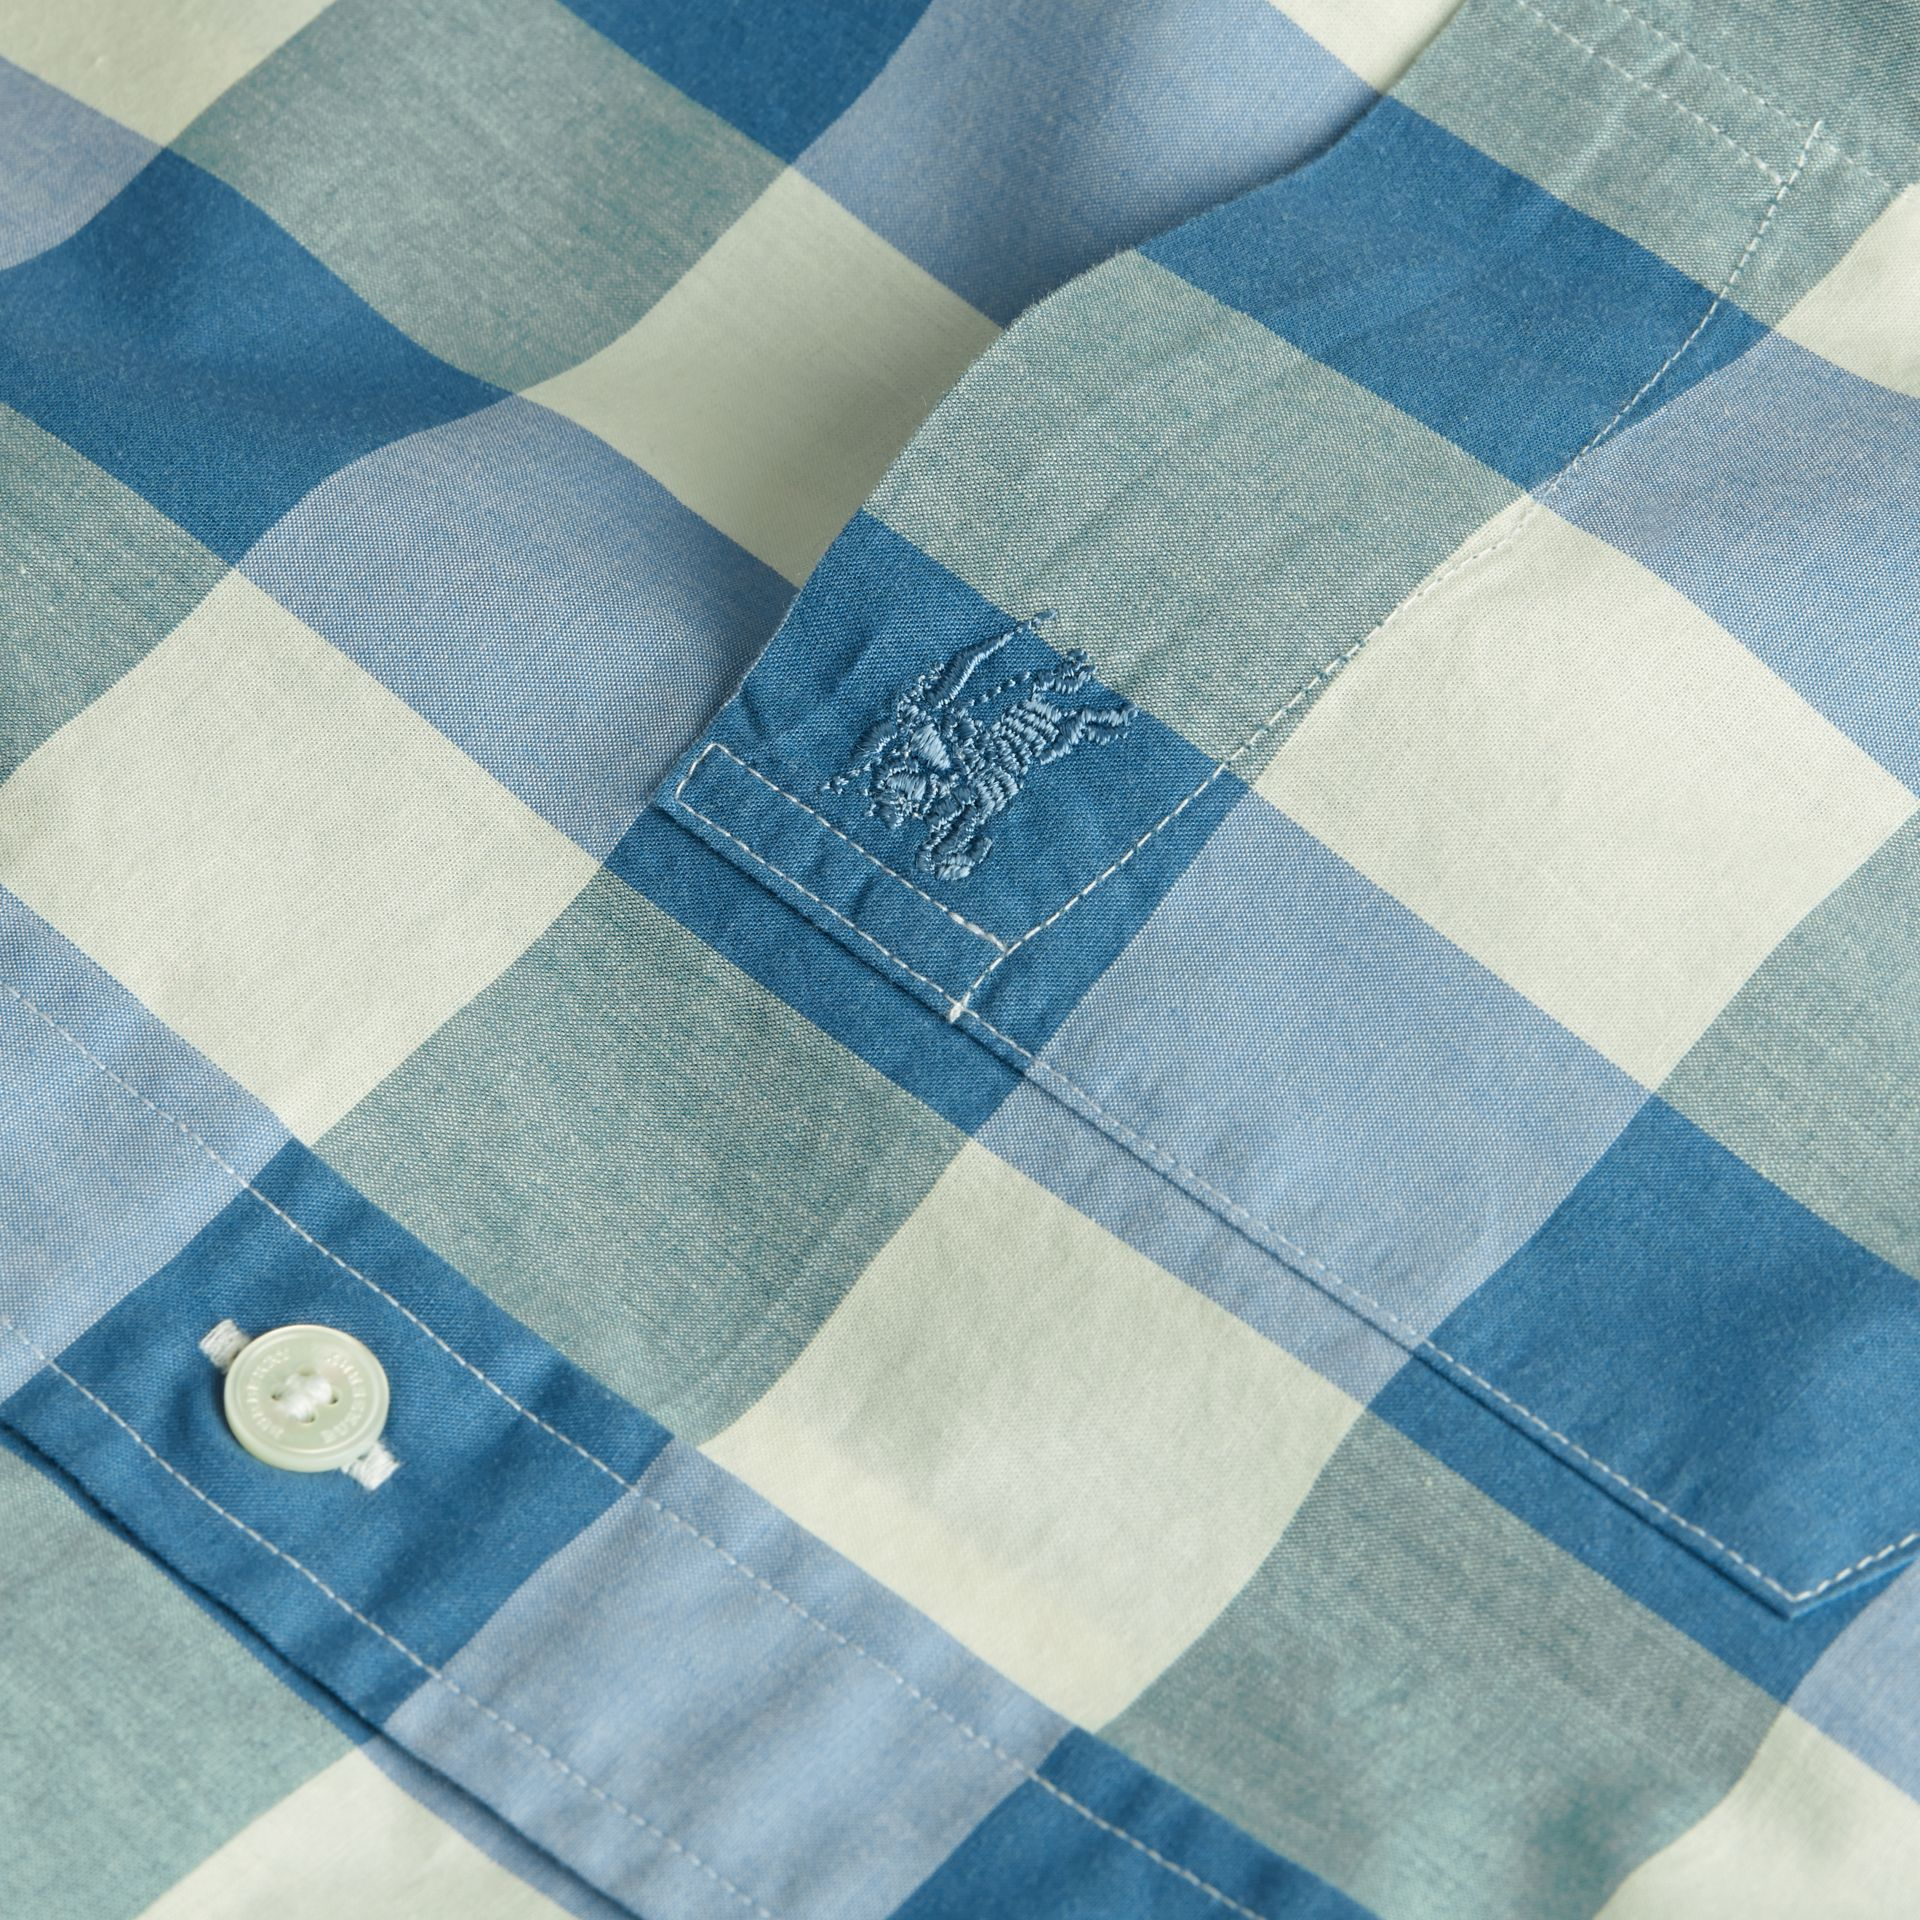 Blu ortensia intenso Camicia vichy in cotone con colletto button-down Blu Ortensia Intenso - immagine della galleria 2